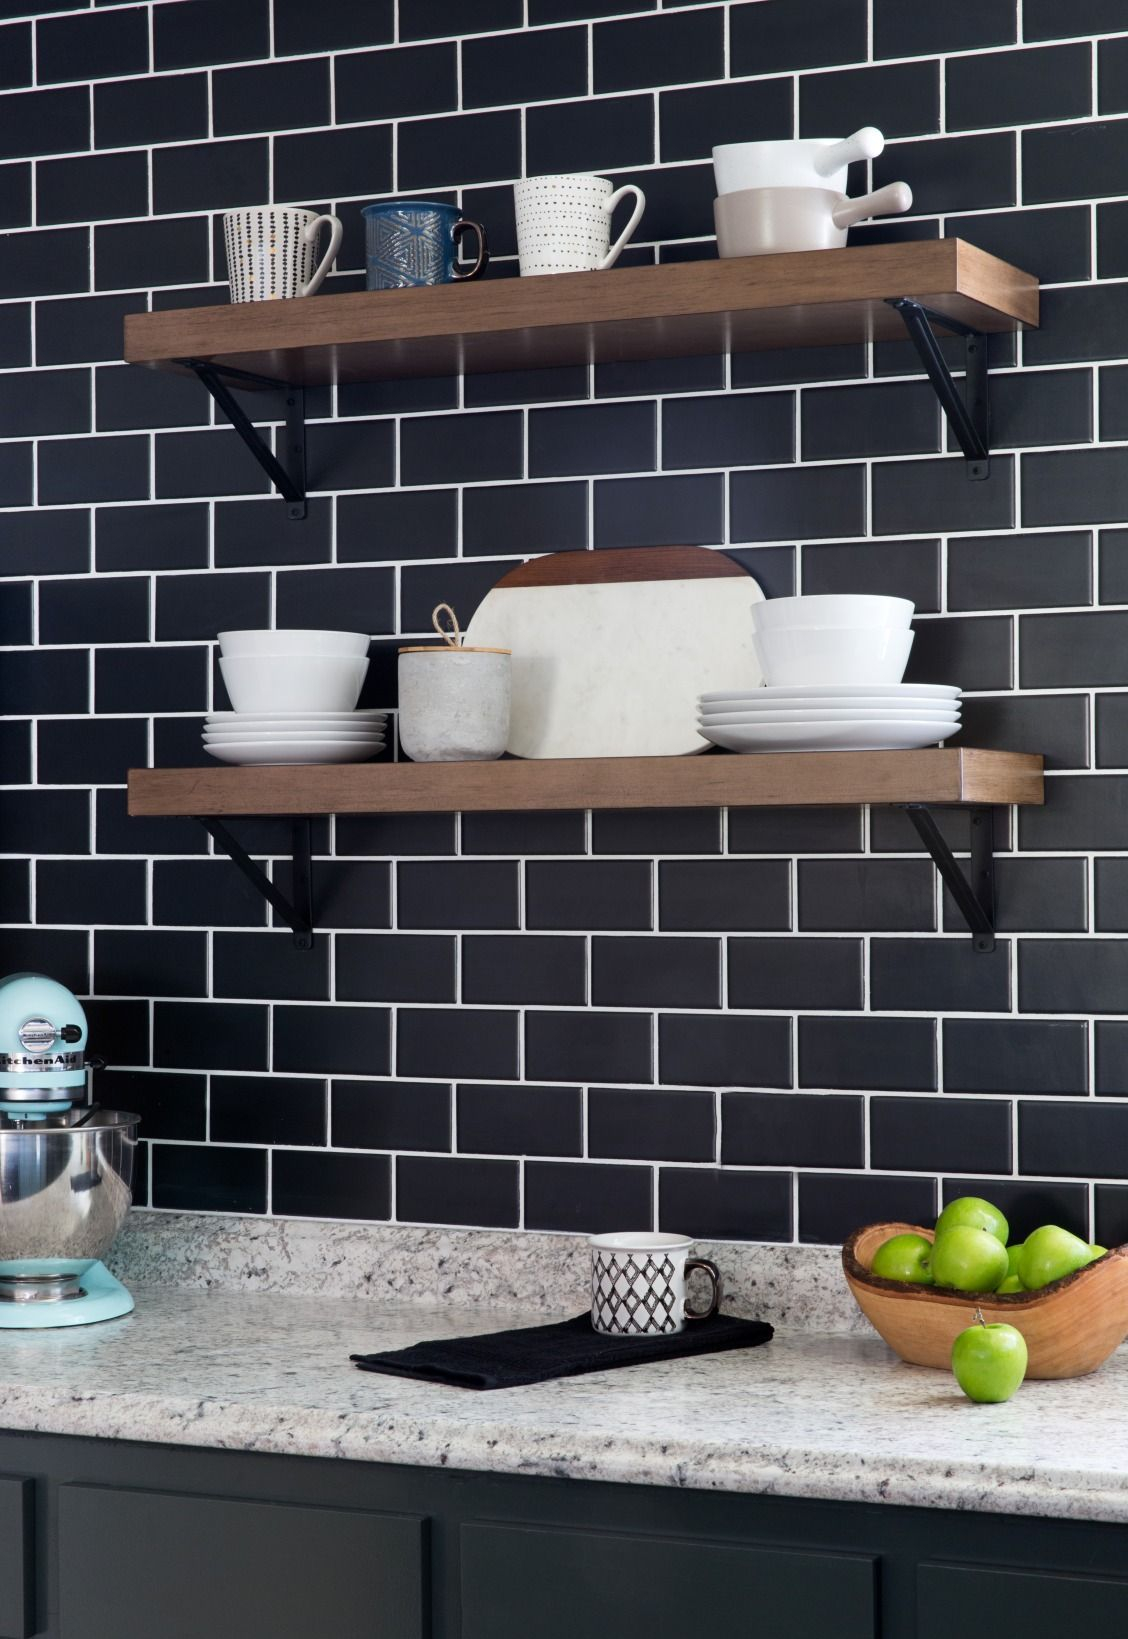 Timeless subway tile gets a modern update in a black matte finish timeless subway tile gets a modern update in a black matte finish in episode 4 dailygadgetfo Choice Image